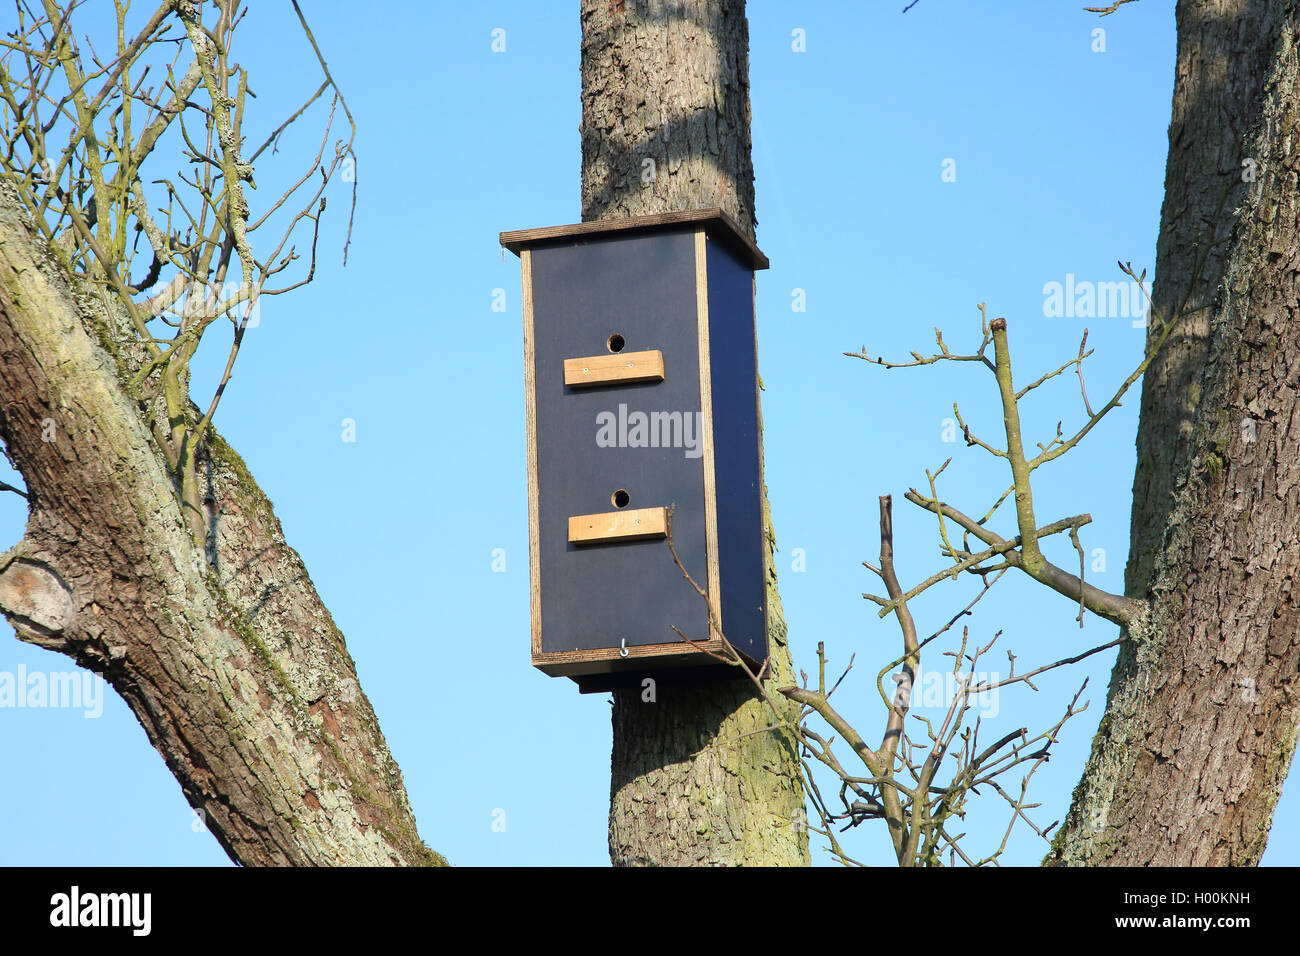 Fledermausnistkasten , Deutschland | bat box, Germany | BLWS421542.jpg [ (c) blickwinkel/W. Layer Tel. +49 (0)2302 - Stock Image